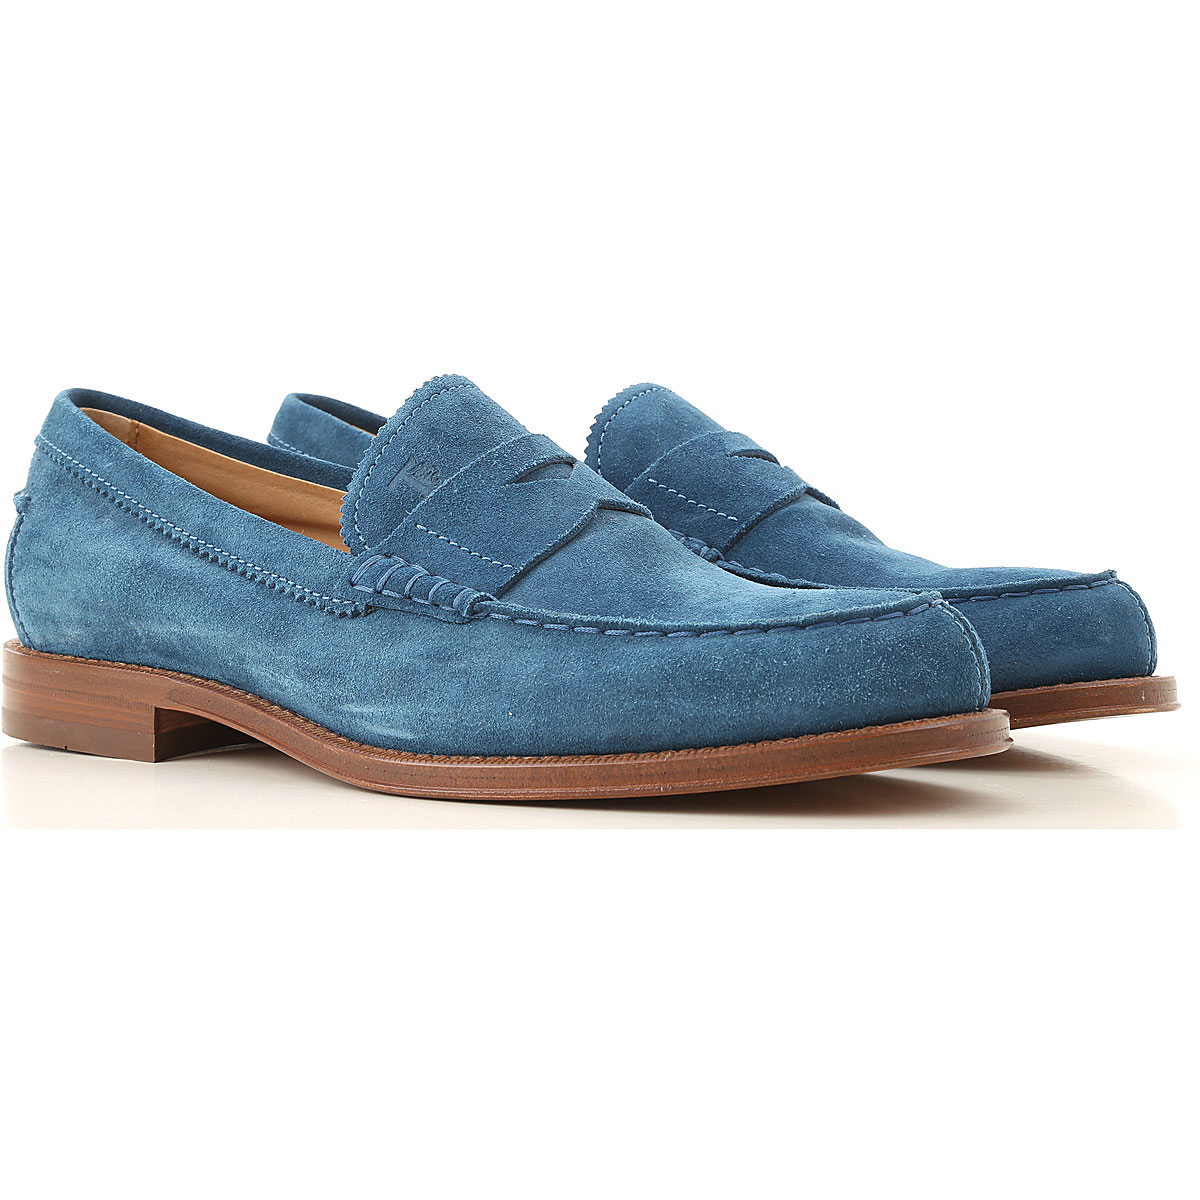 Tods Loafers for Men On Sale Cobalt Turquoise - GOOFASH